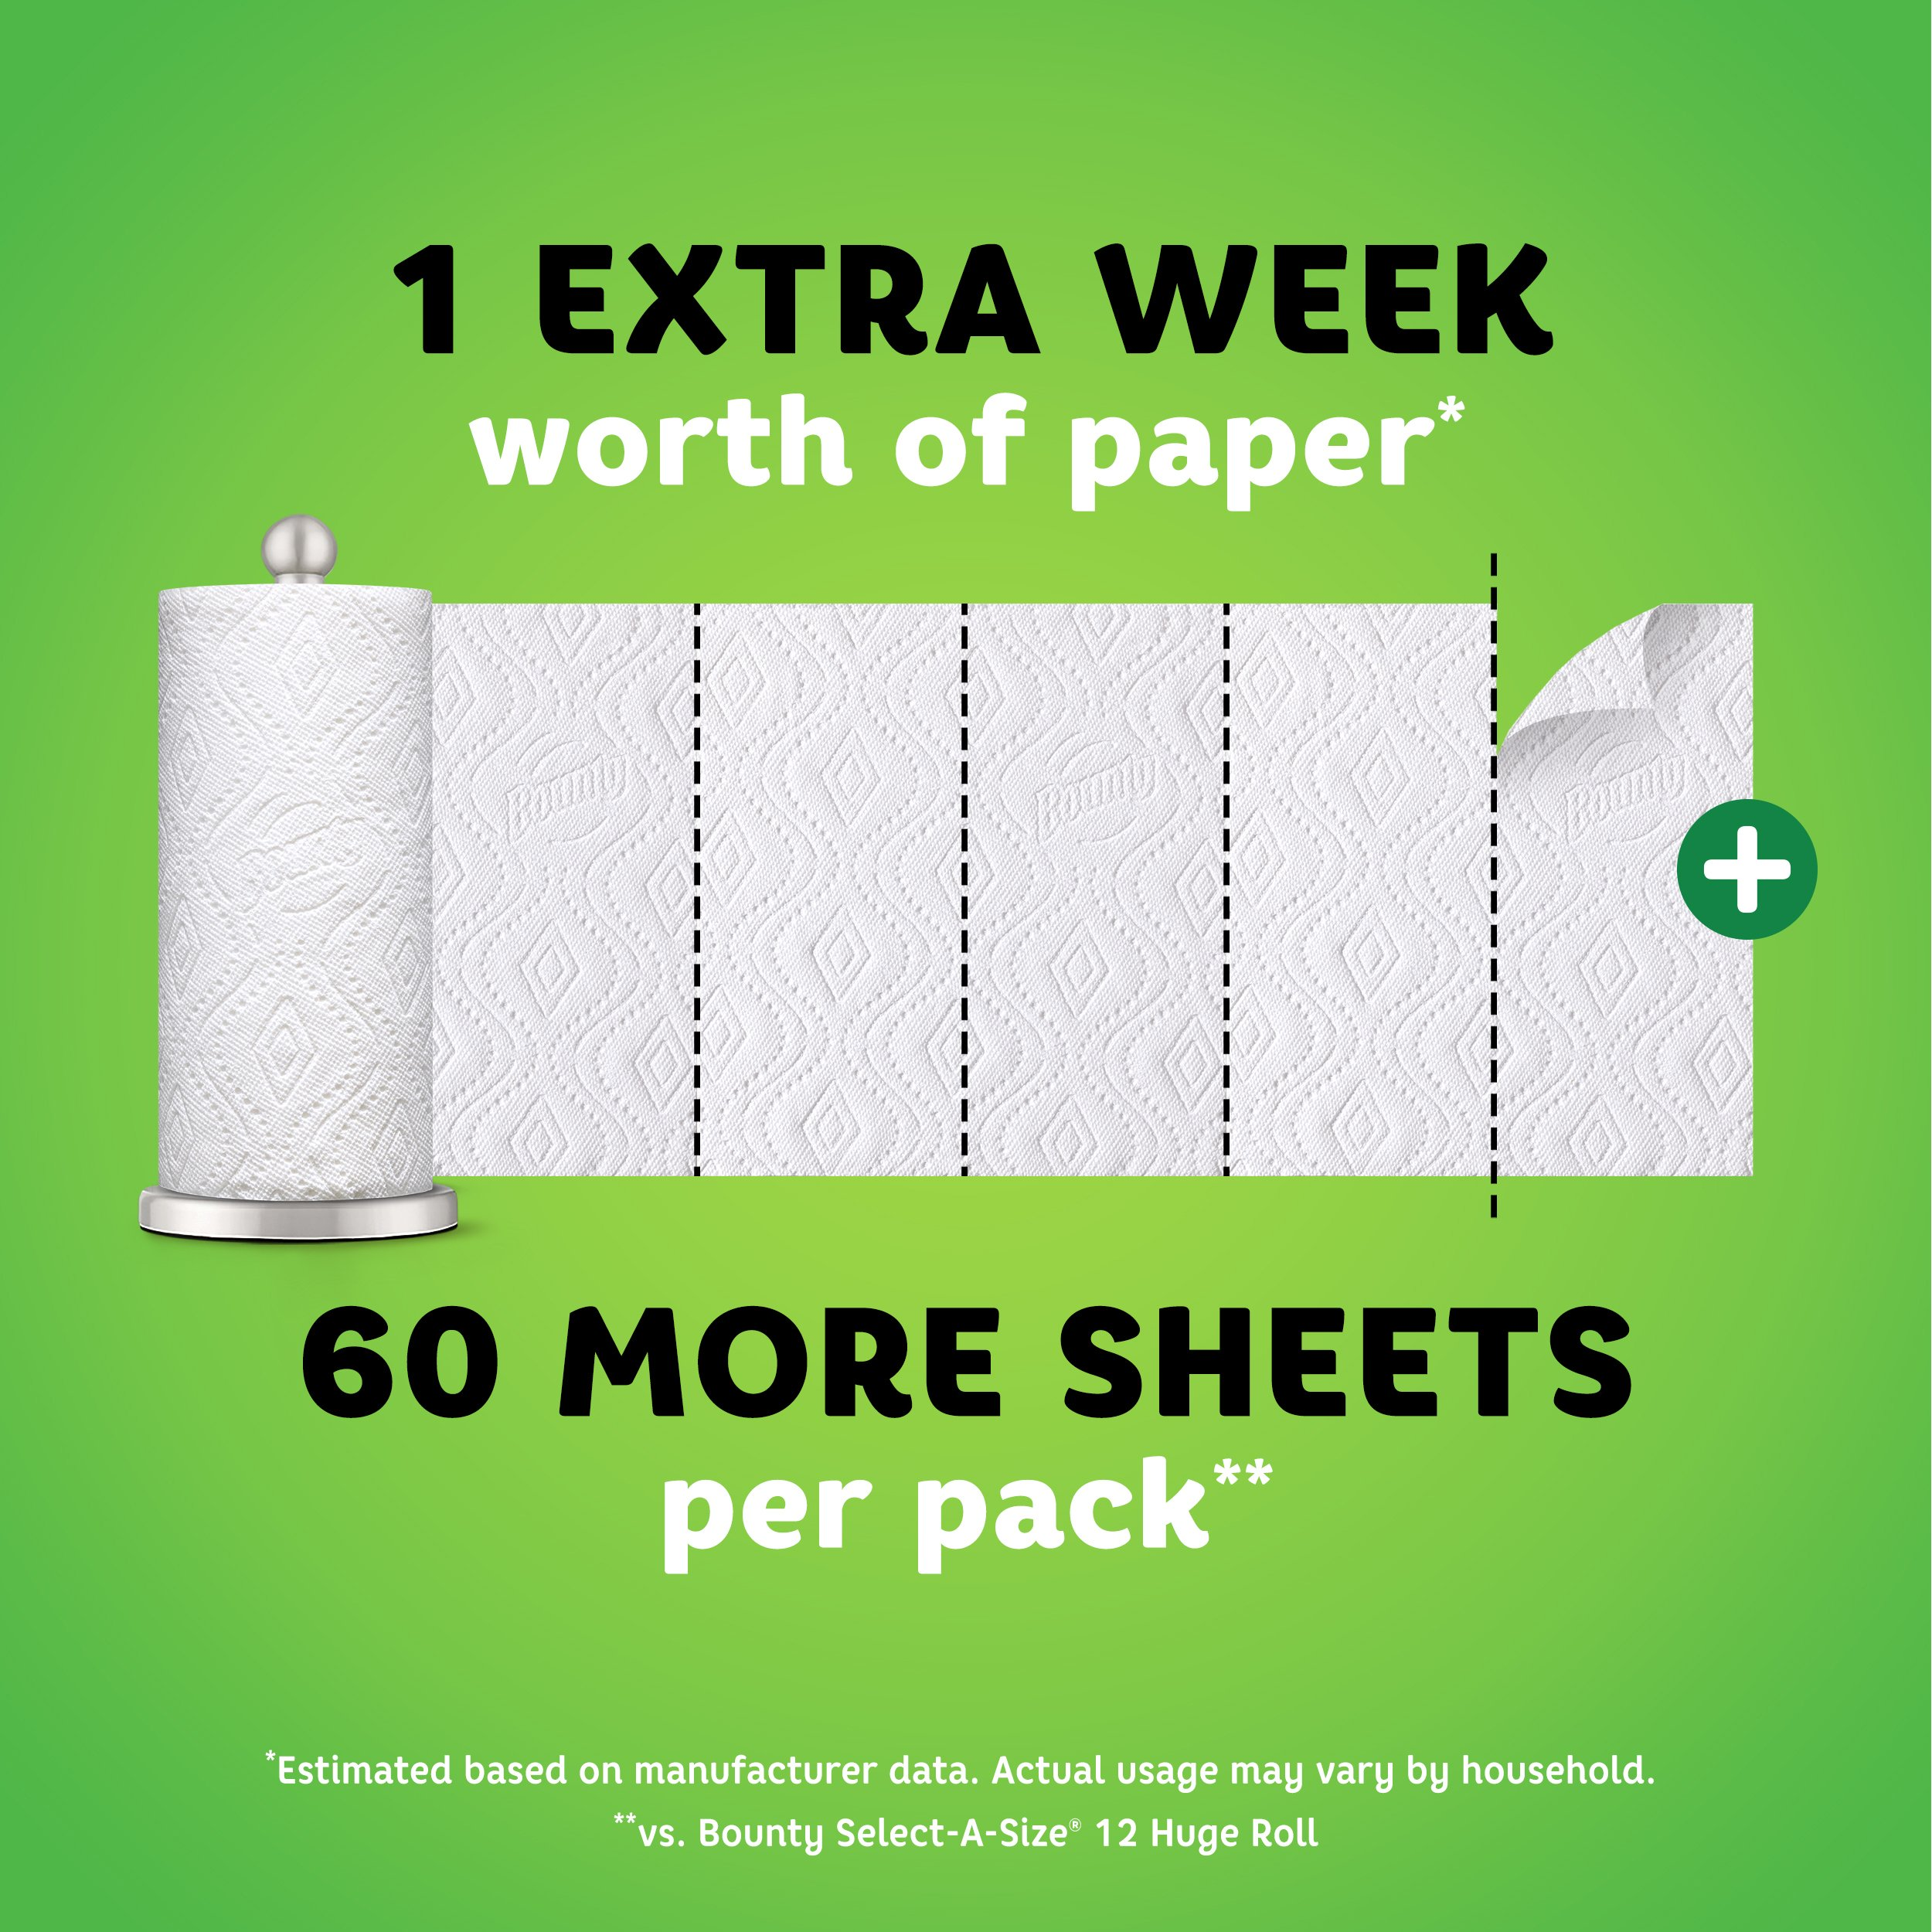 Bounty Quick-Size Paper Towels, White, Family Rolls, 12 Count (Equal to 30 Regular Rolls) by Bounty (Image #3)